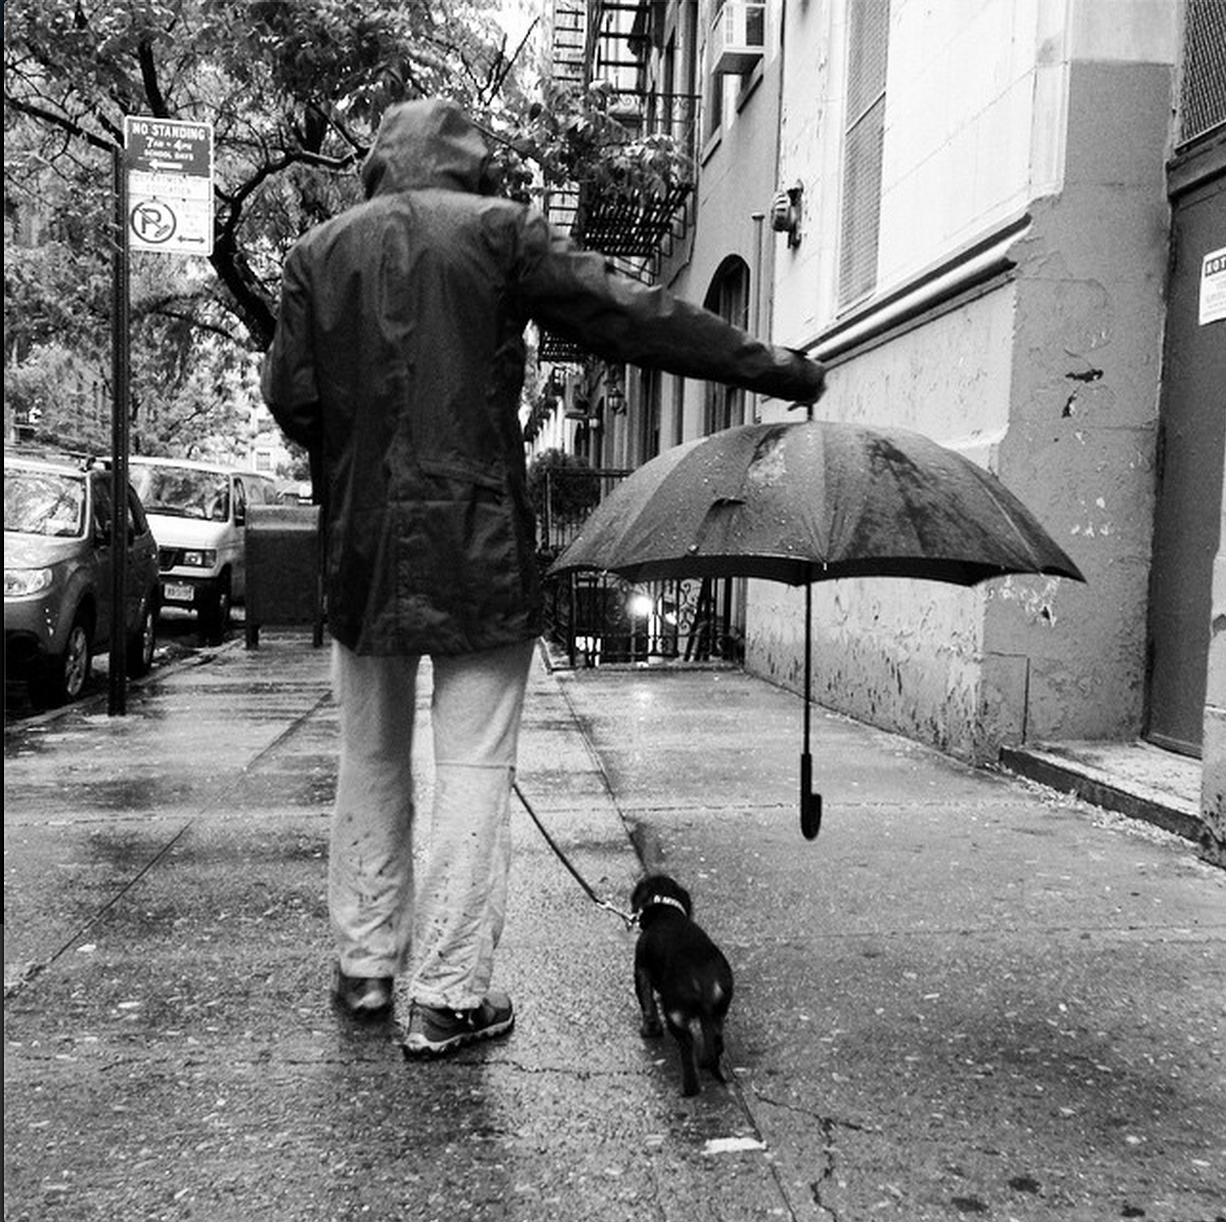 Best umbrella ettiquette, spotted on the streets of NYC